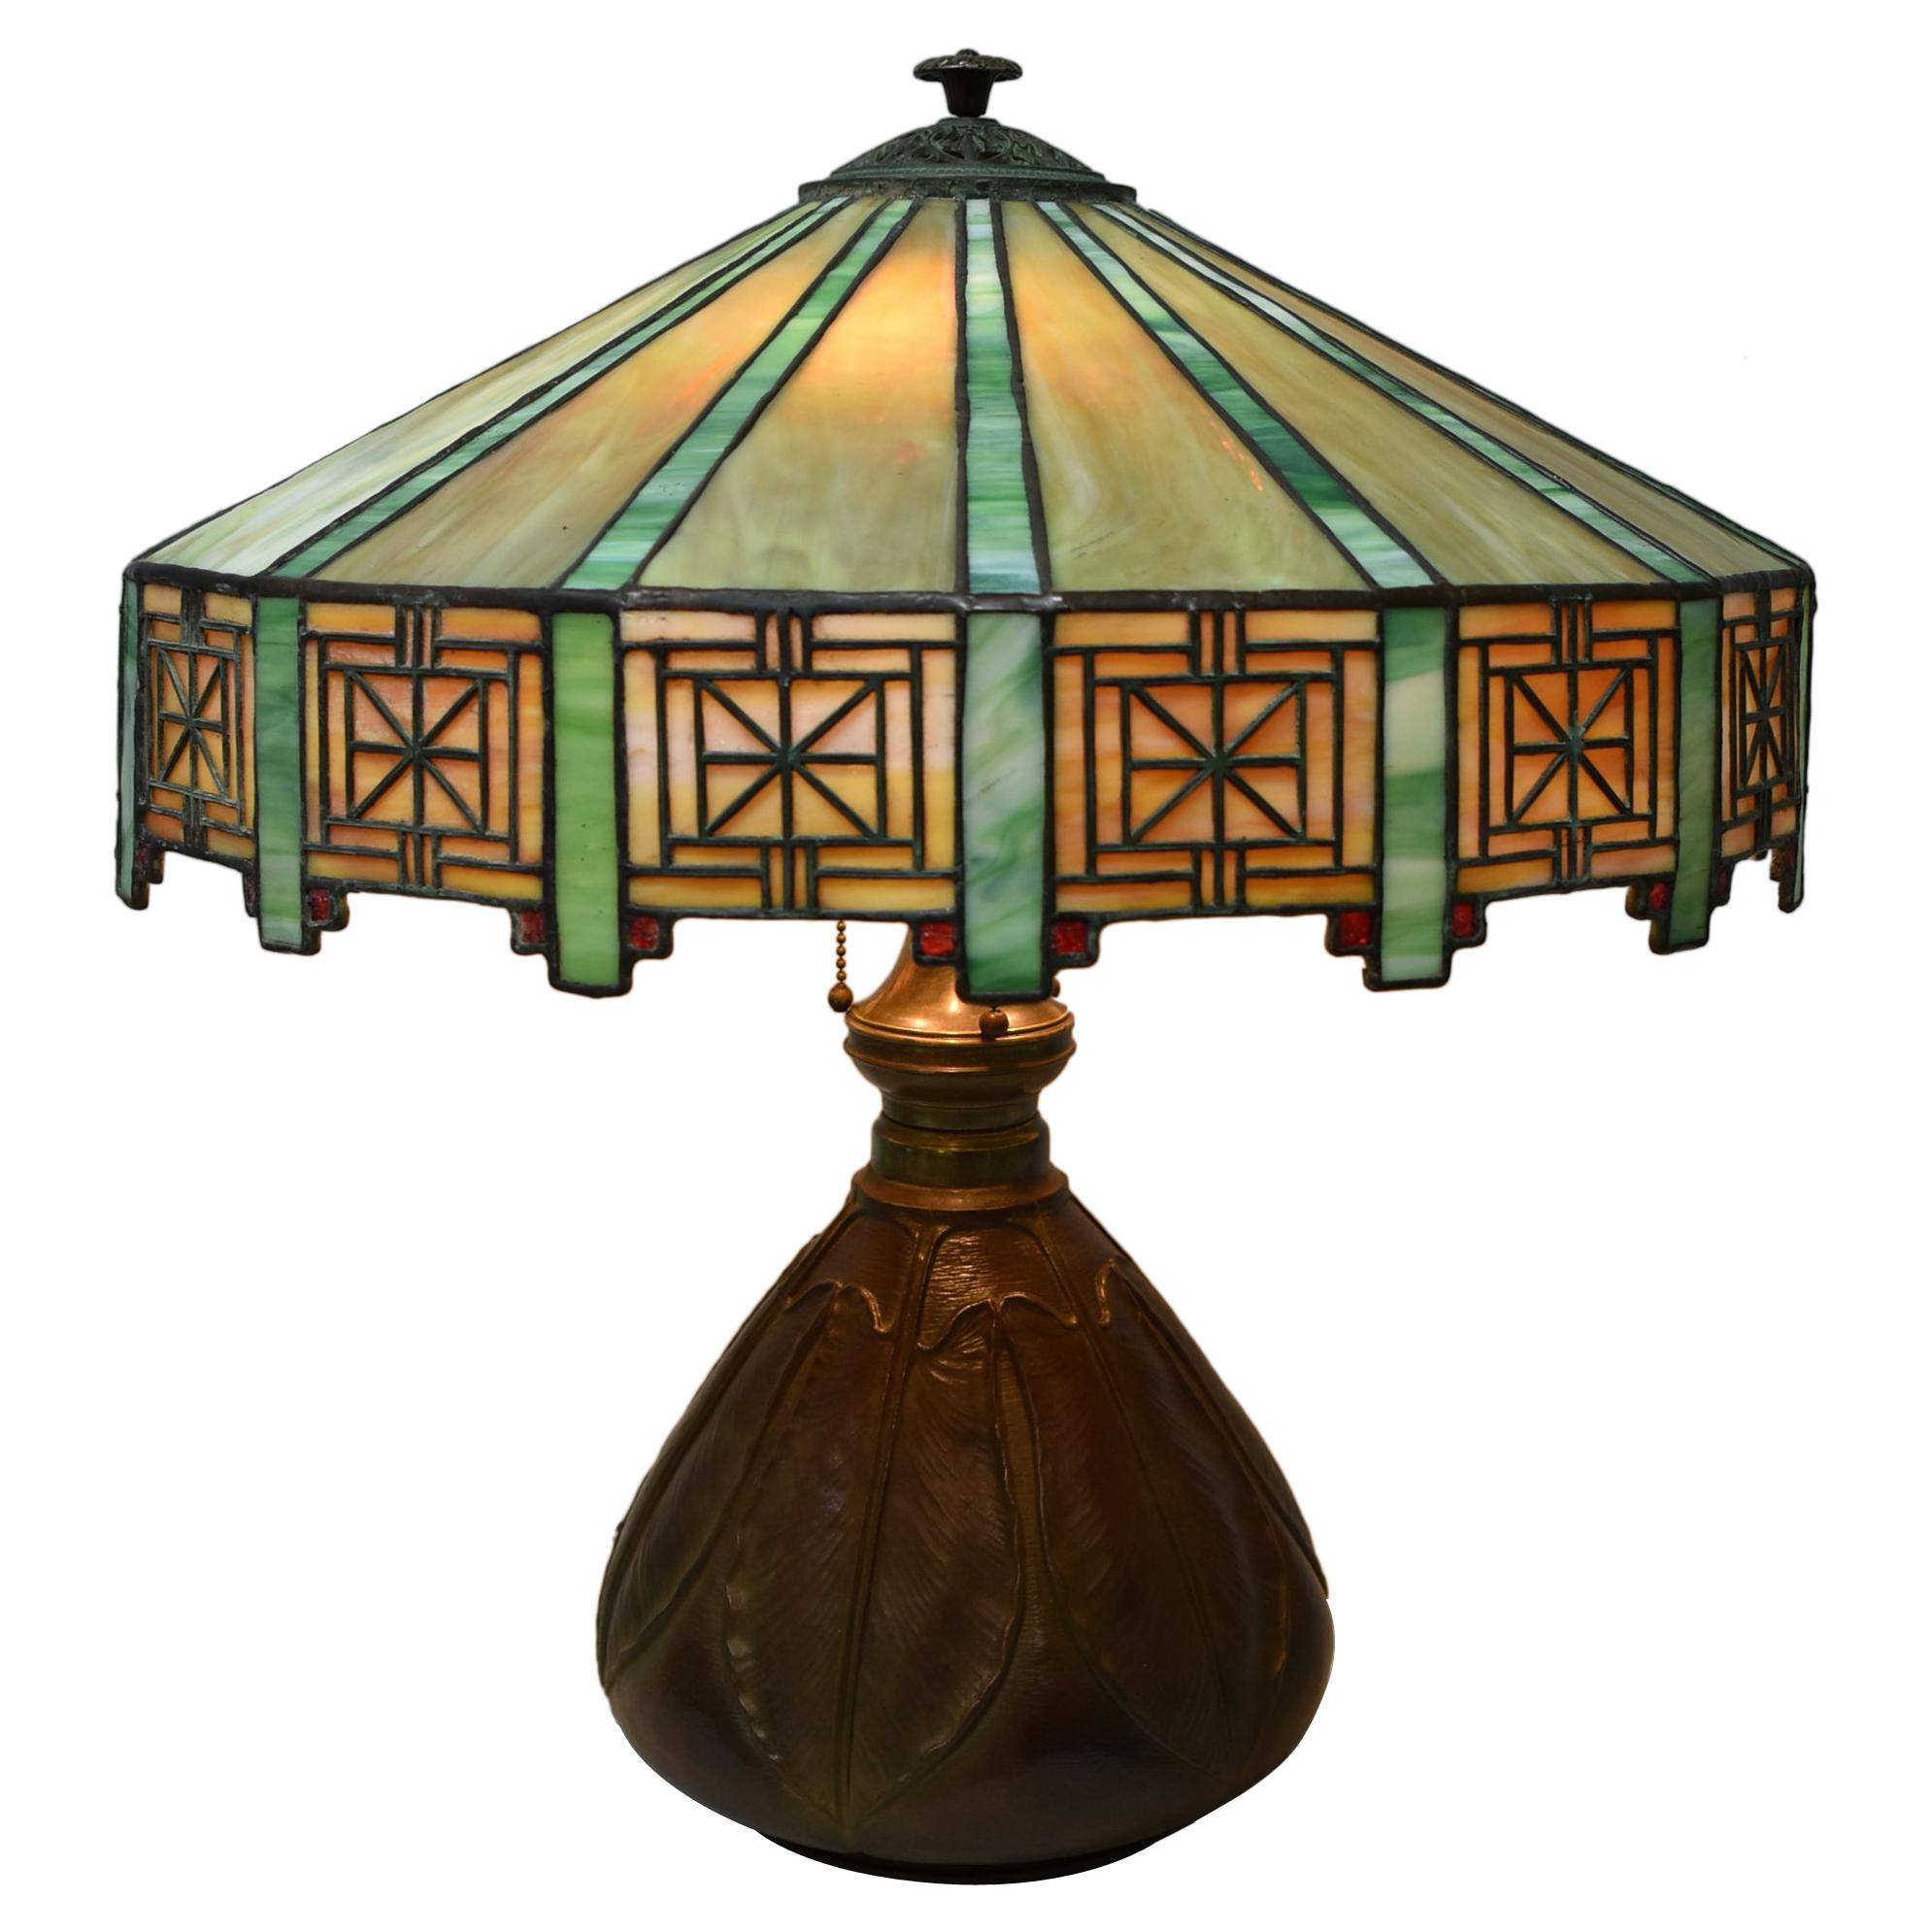 Antique Bradley & Hubbard Arts & Crafts Leaded Glass Table Lamp